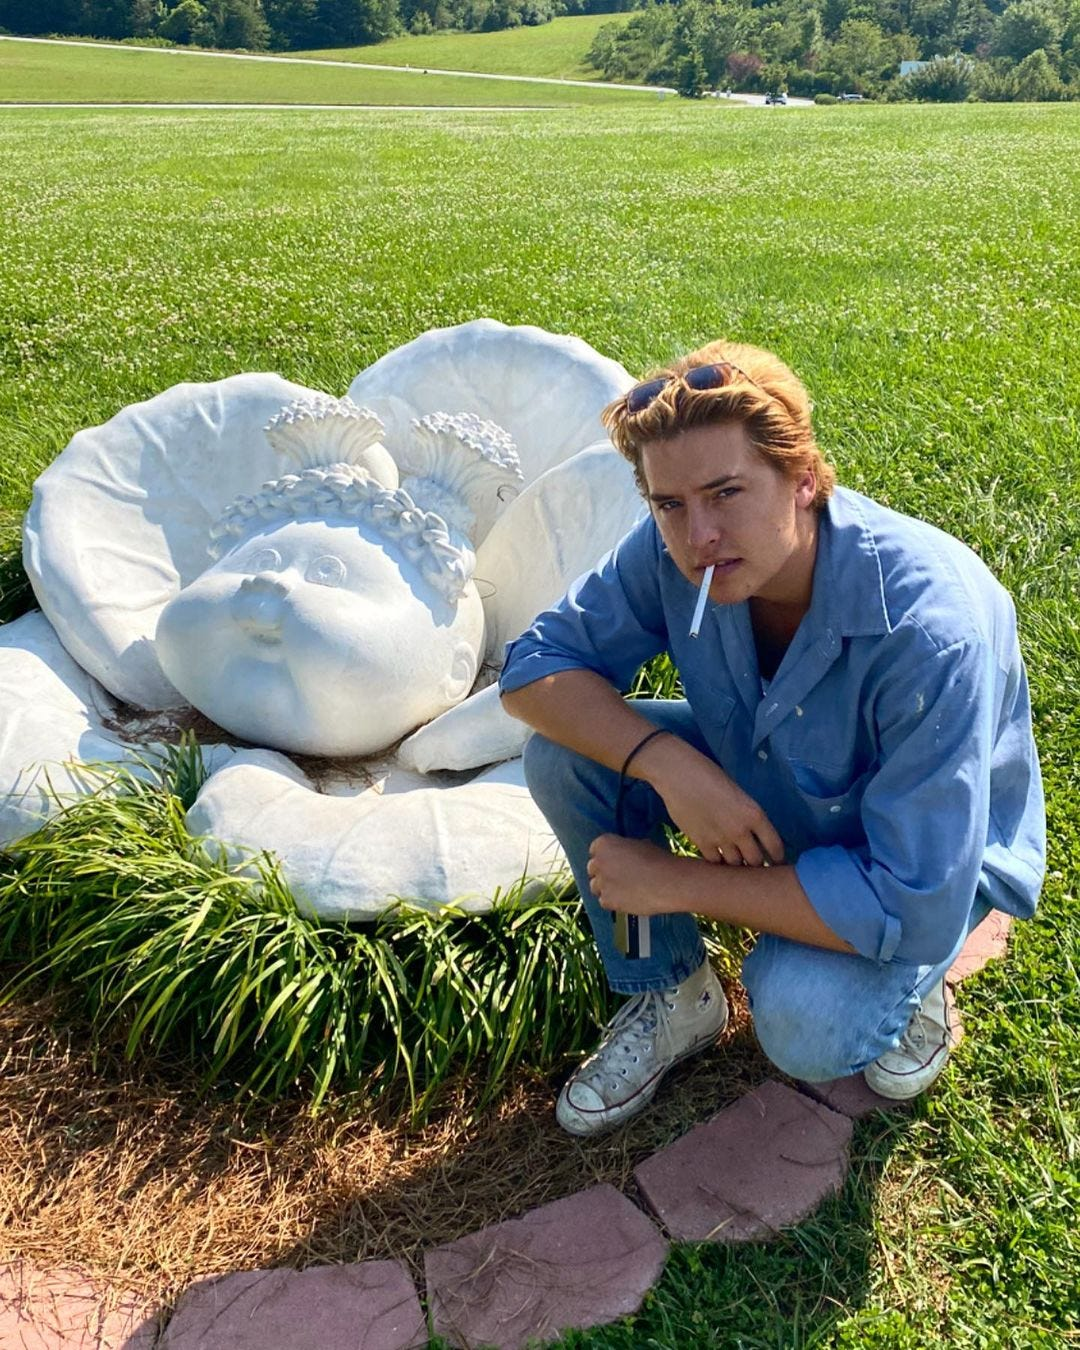 Cole Sprouse, dressed in all denim, kneels beside a stone statue of a Cabbage Patch Kid mid-birth, cigarette perched on the edge of his lips.